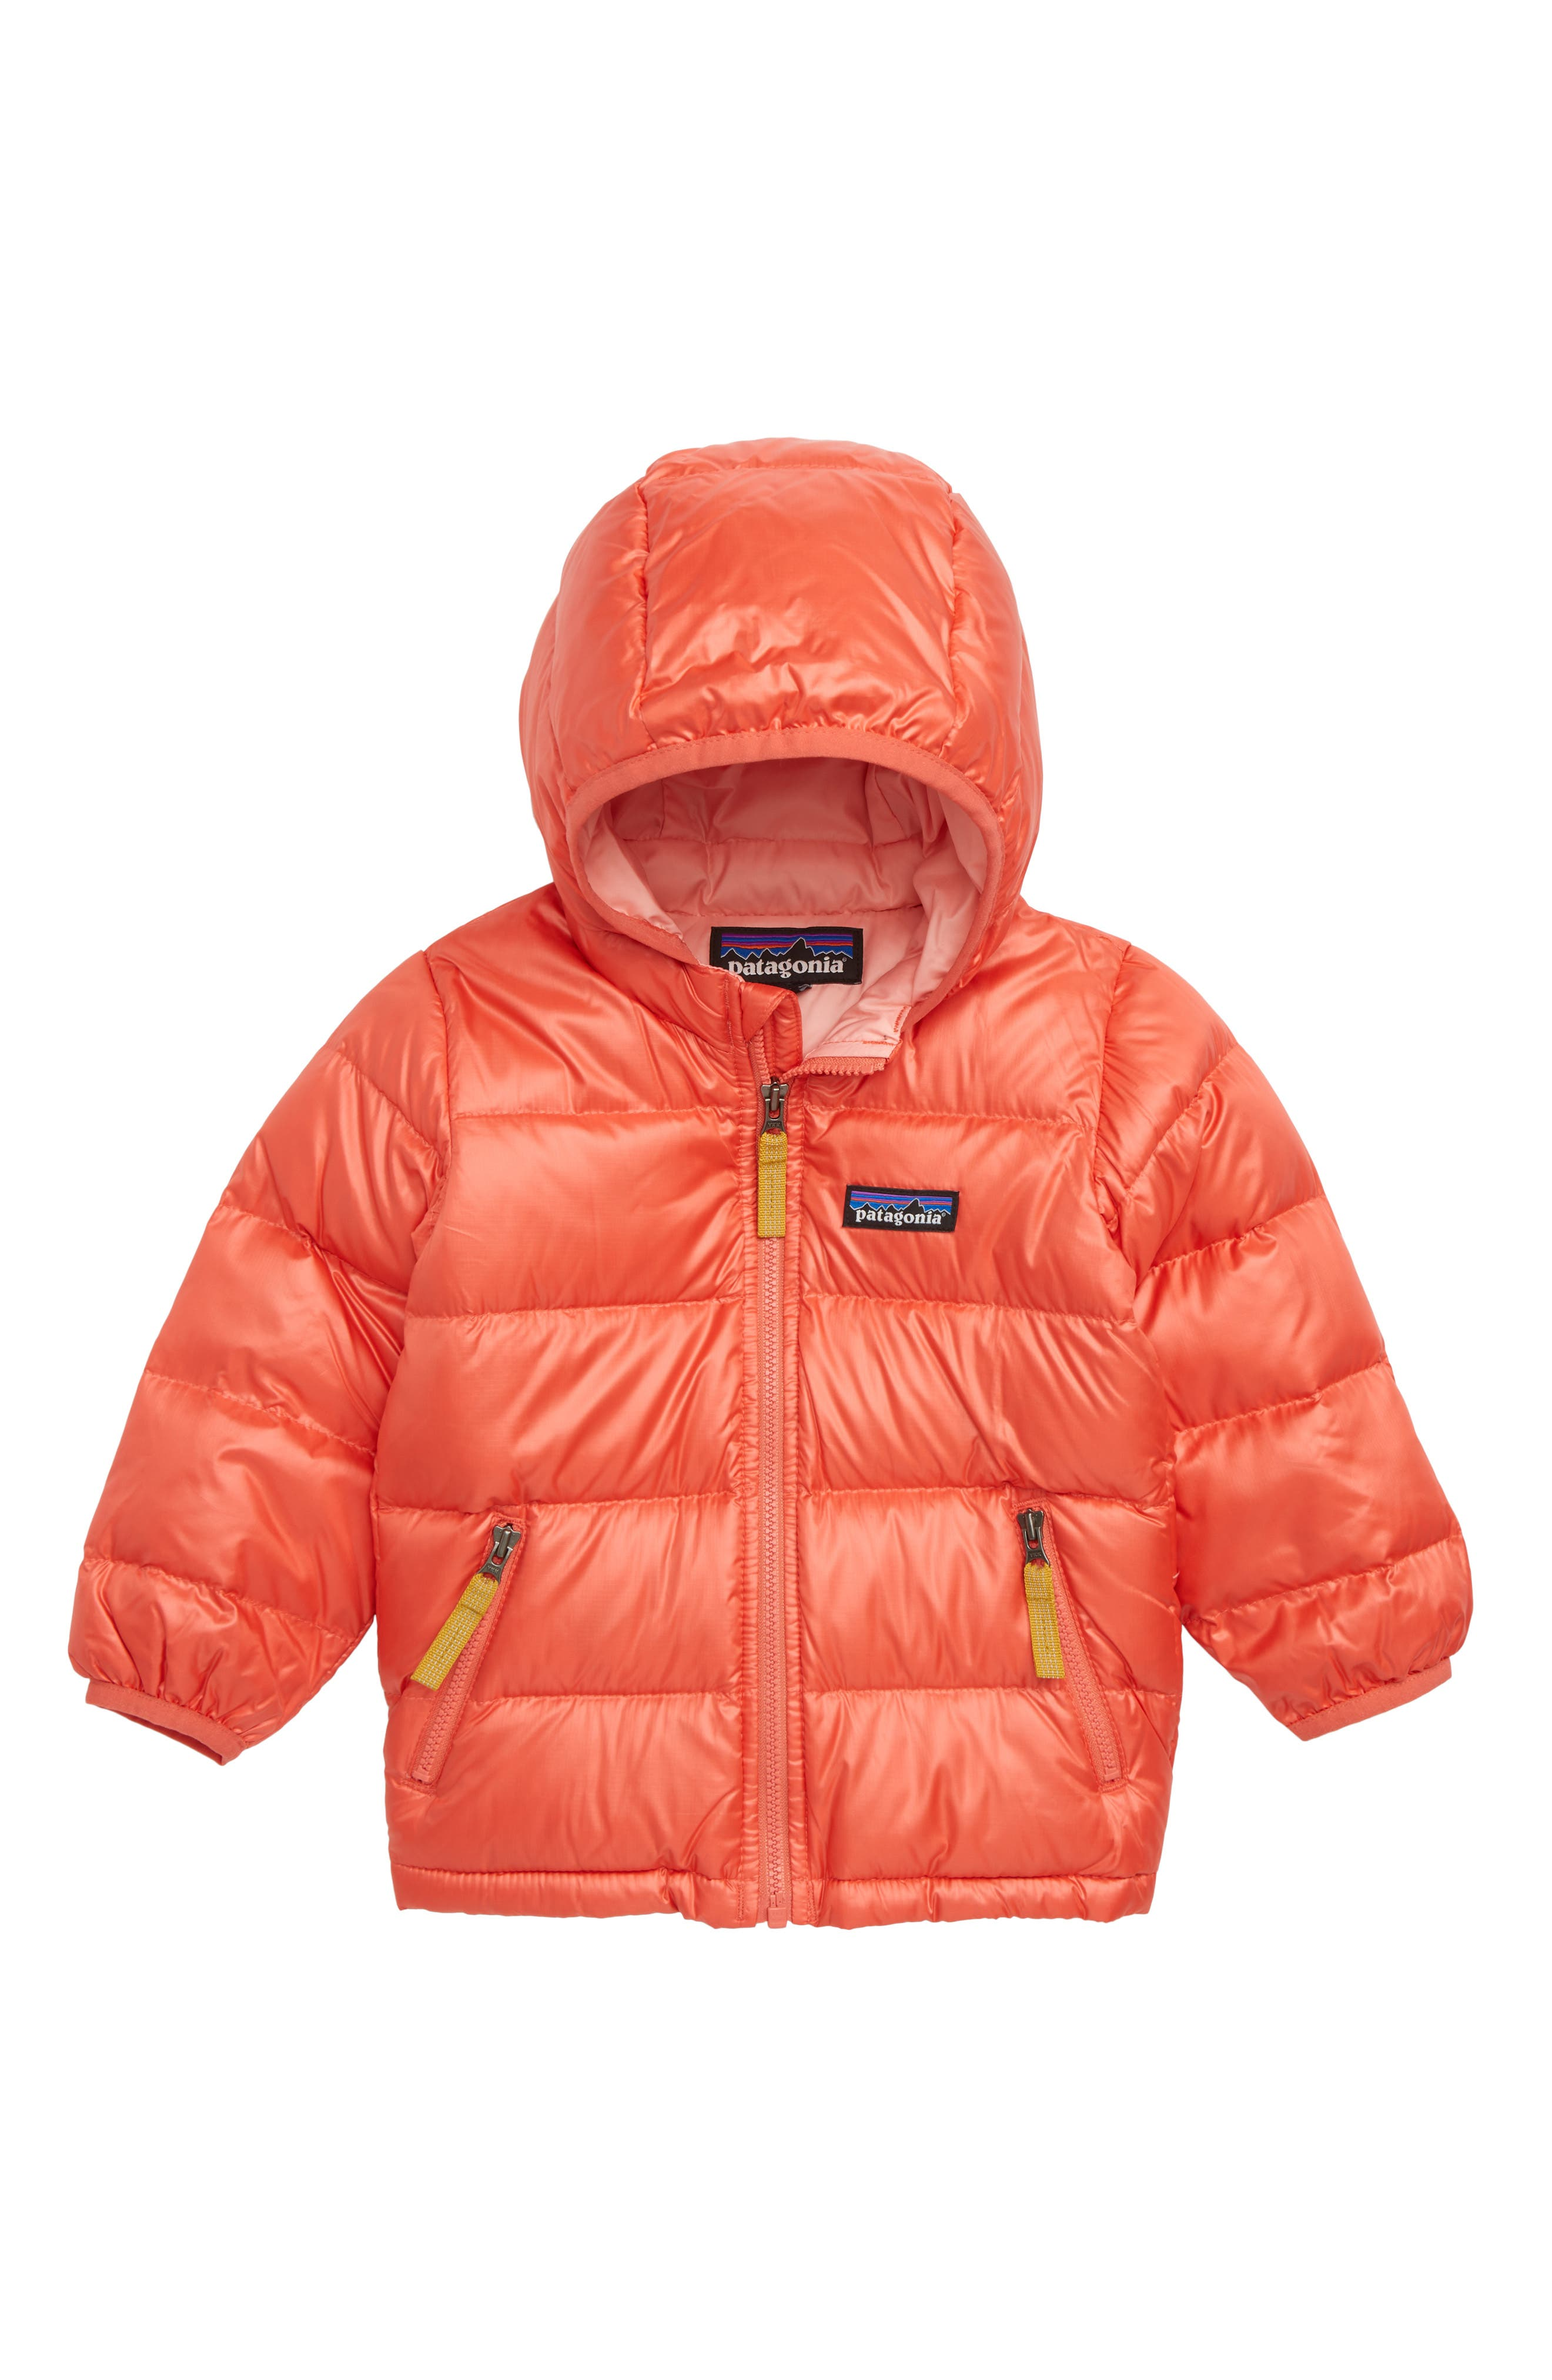 Hooded Down Jacket,                             Main thumbnail 1, color,                             SPCL SPICED CORAL